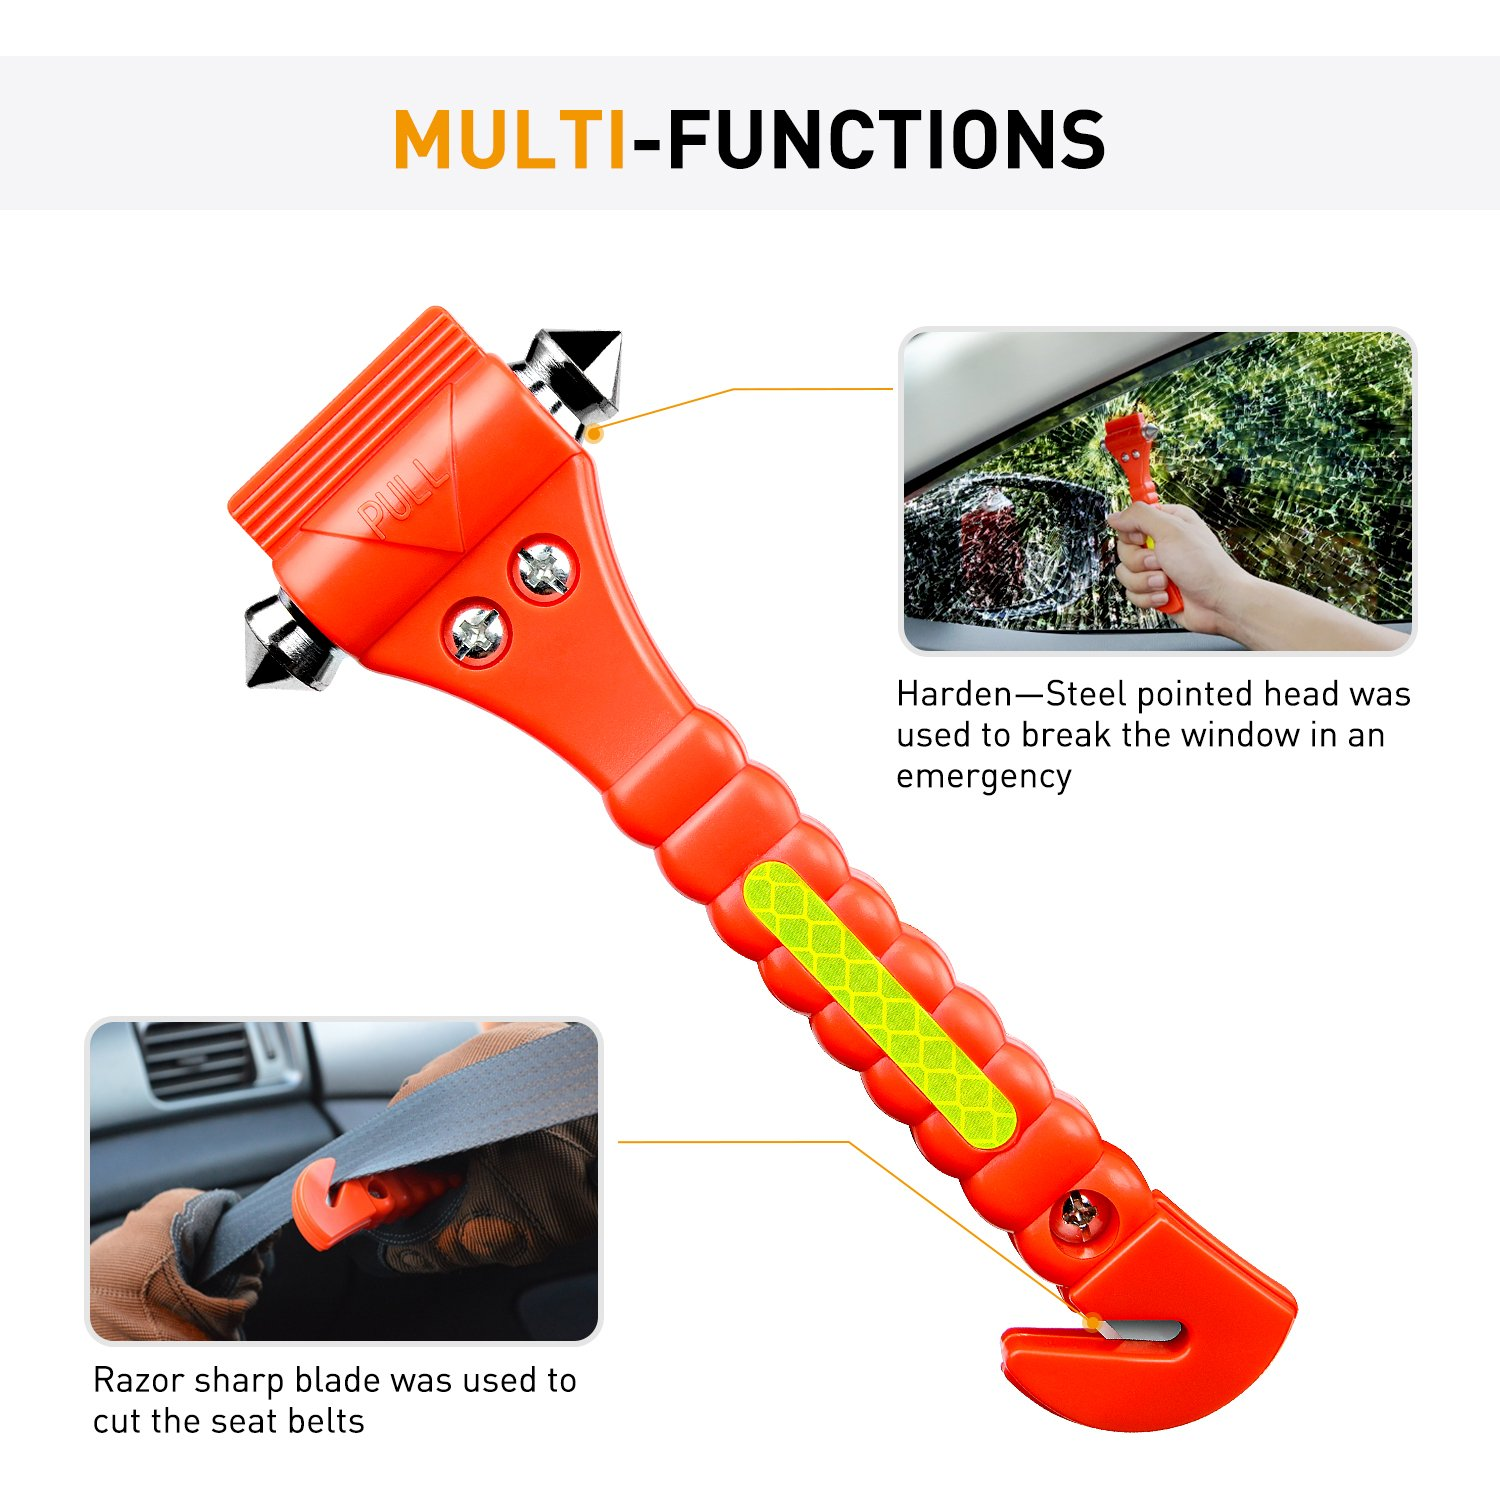 Seatbelt Cutter/Window Breaker made our CampingForFoodies hand-selected list of 100+ Camping Stocking Stuffers For RV And Tent Campers!